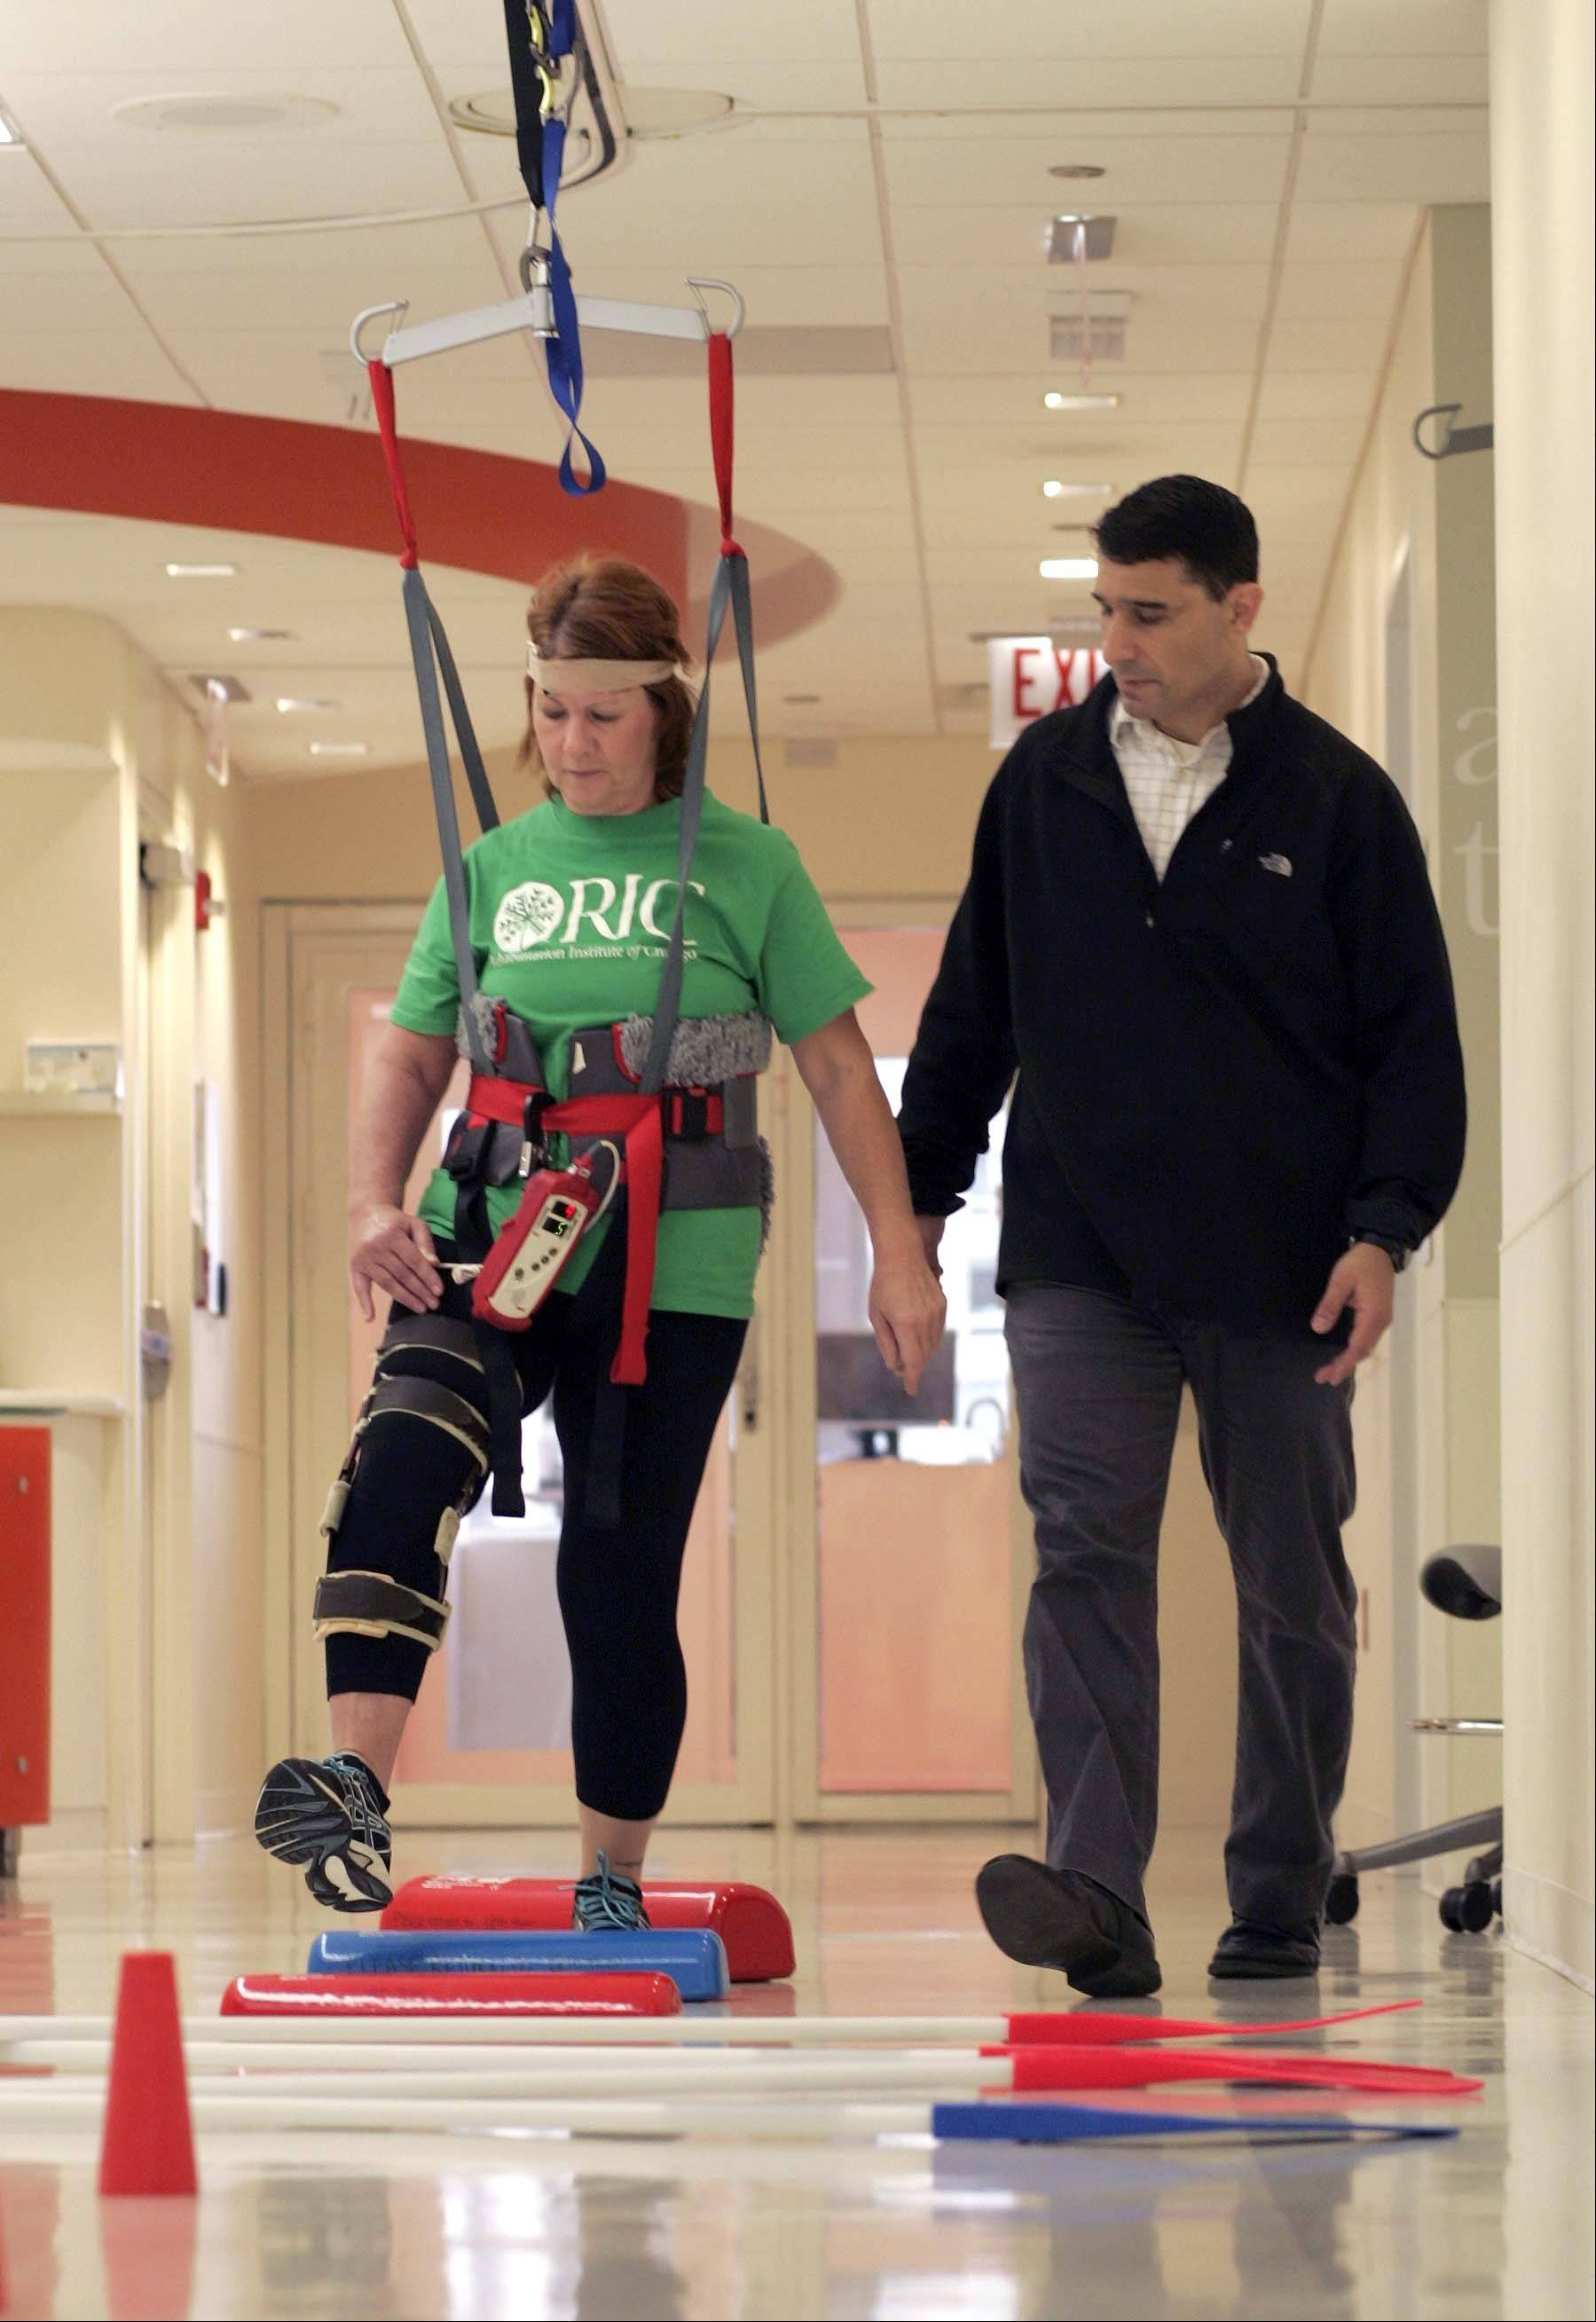 Kathy Pacholski works with Research Scientist and Physical Therapist T. George Hornby at the Rehabilitation Institute of Chicago, where she participated in a walking trial for stroke victims. Patients often wear a harness and a heart monitor while performing exercises.